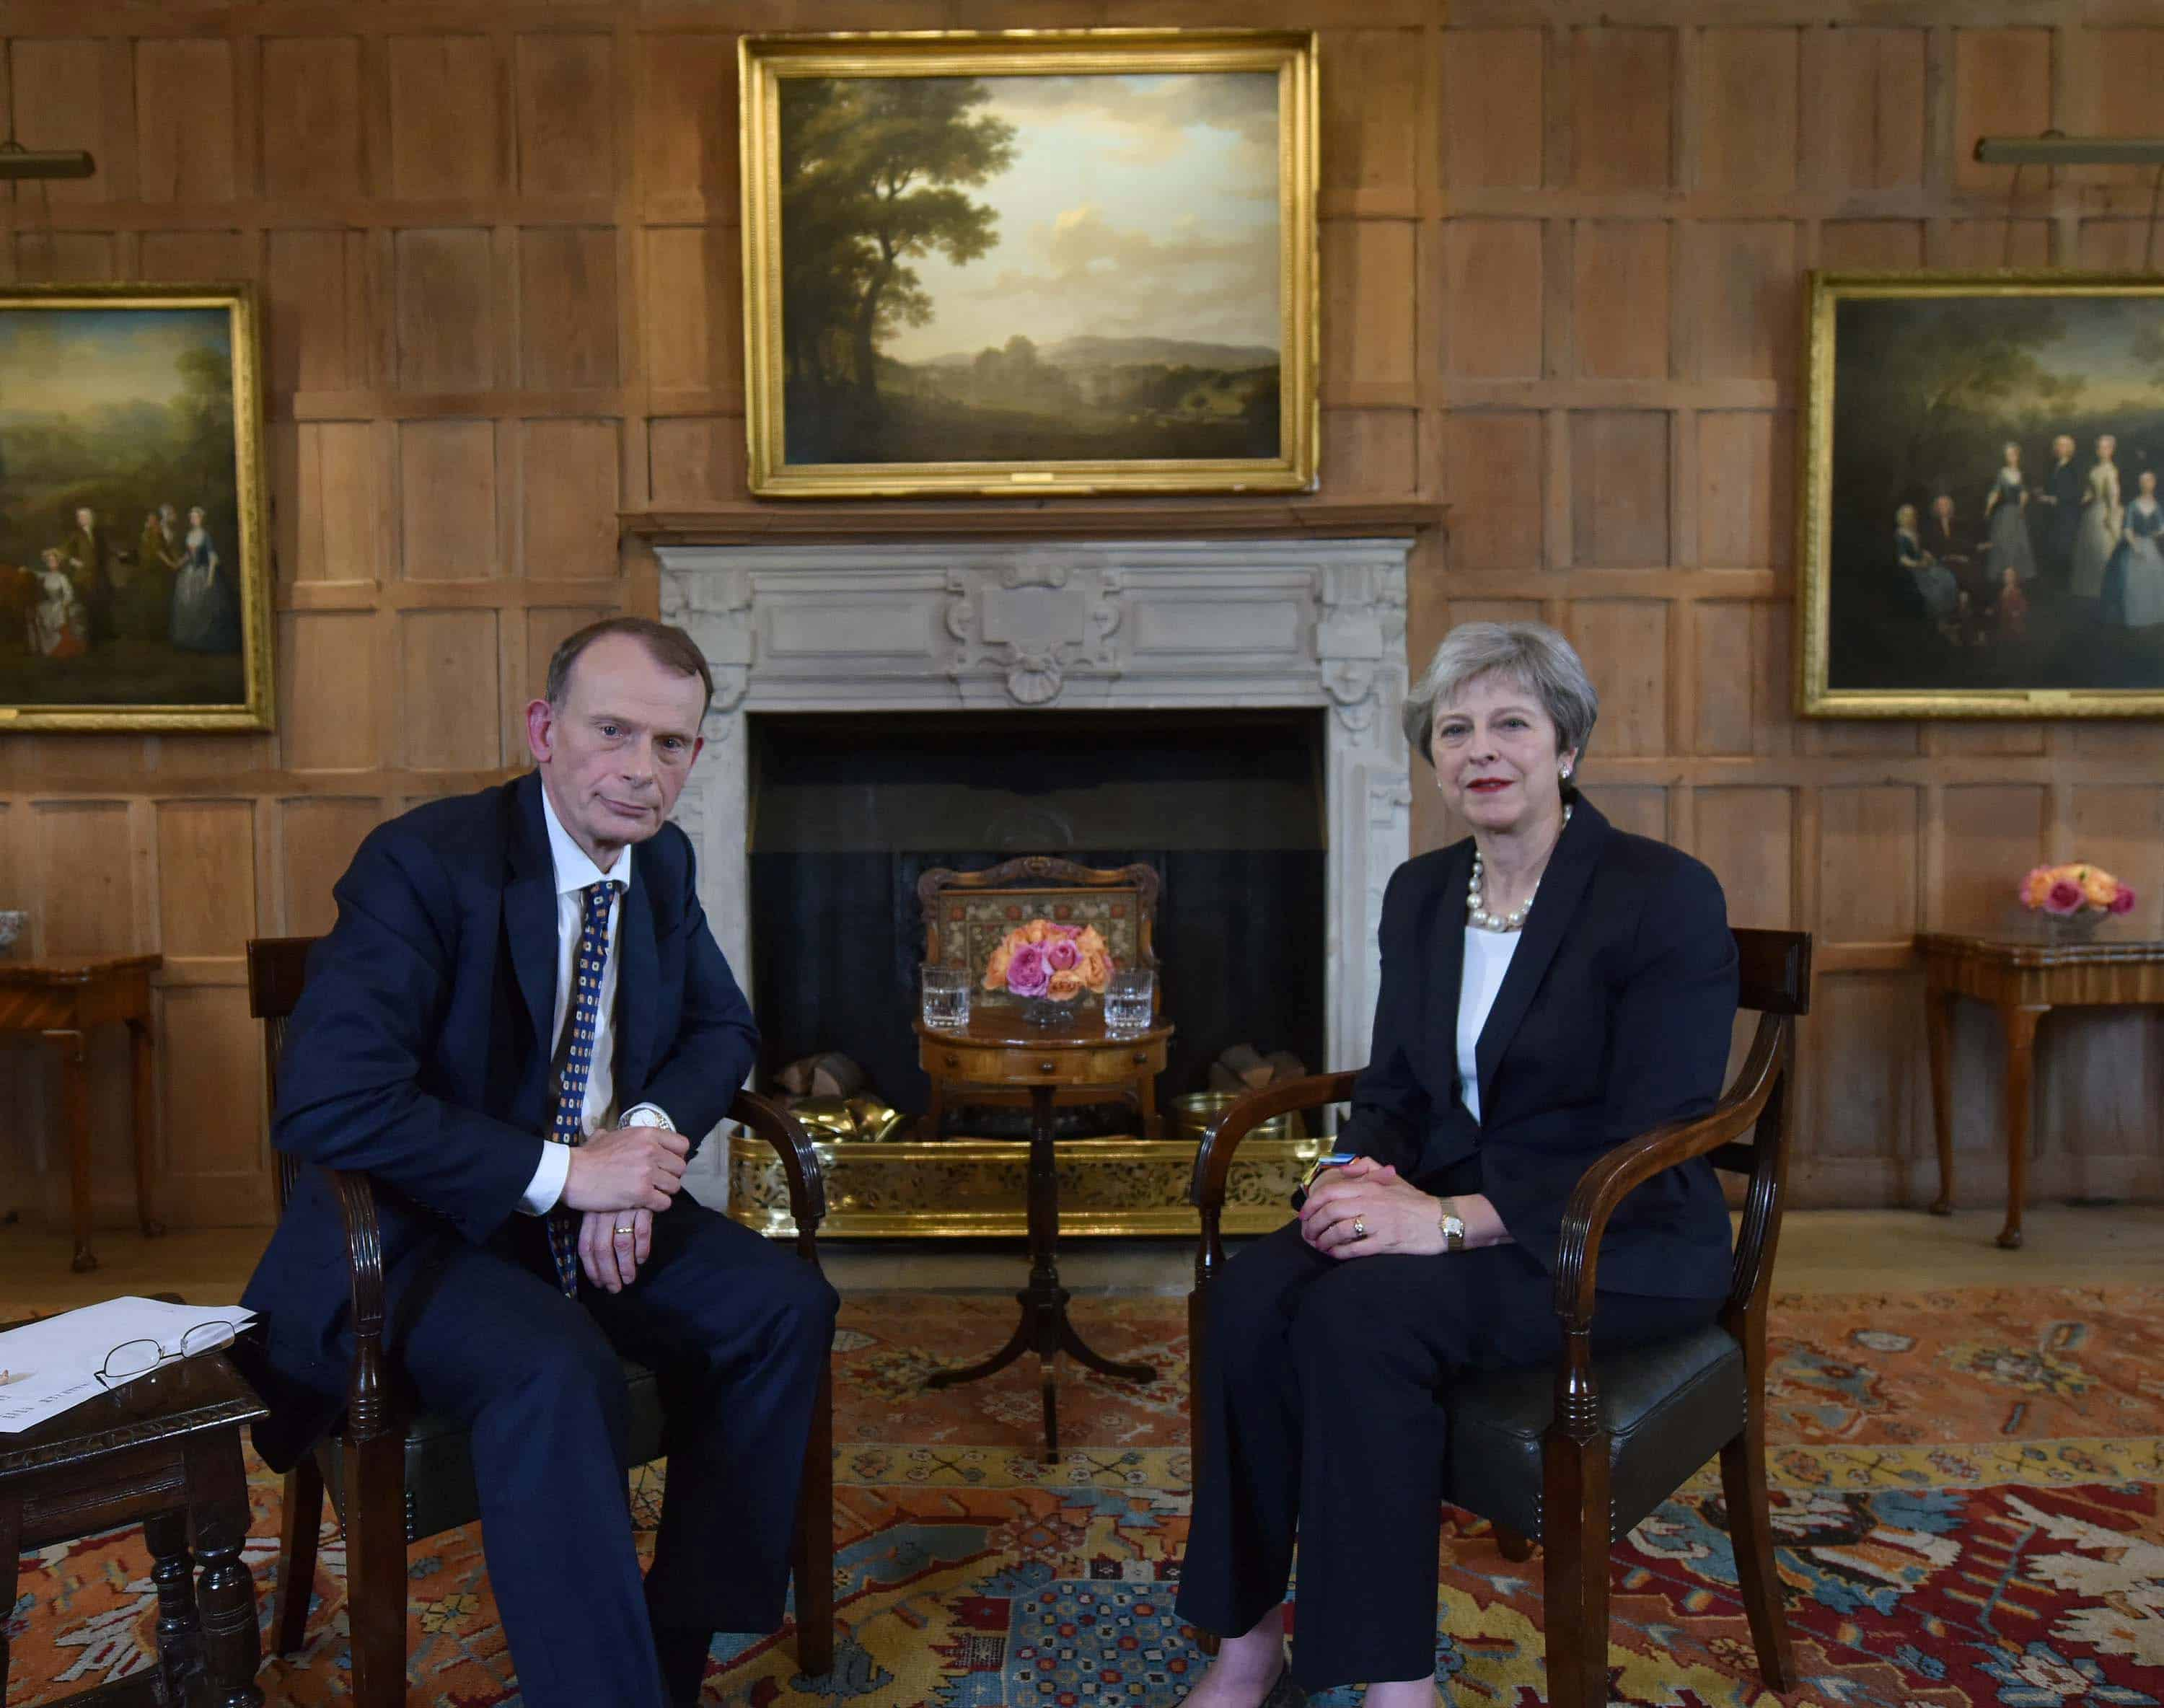 7921ab3e-tagreuters.com2018binary_LYNXMPEE5G09H-FILEDIMAGE